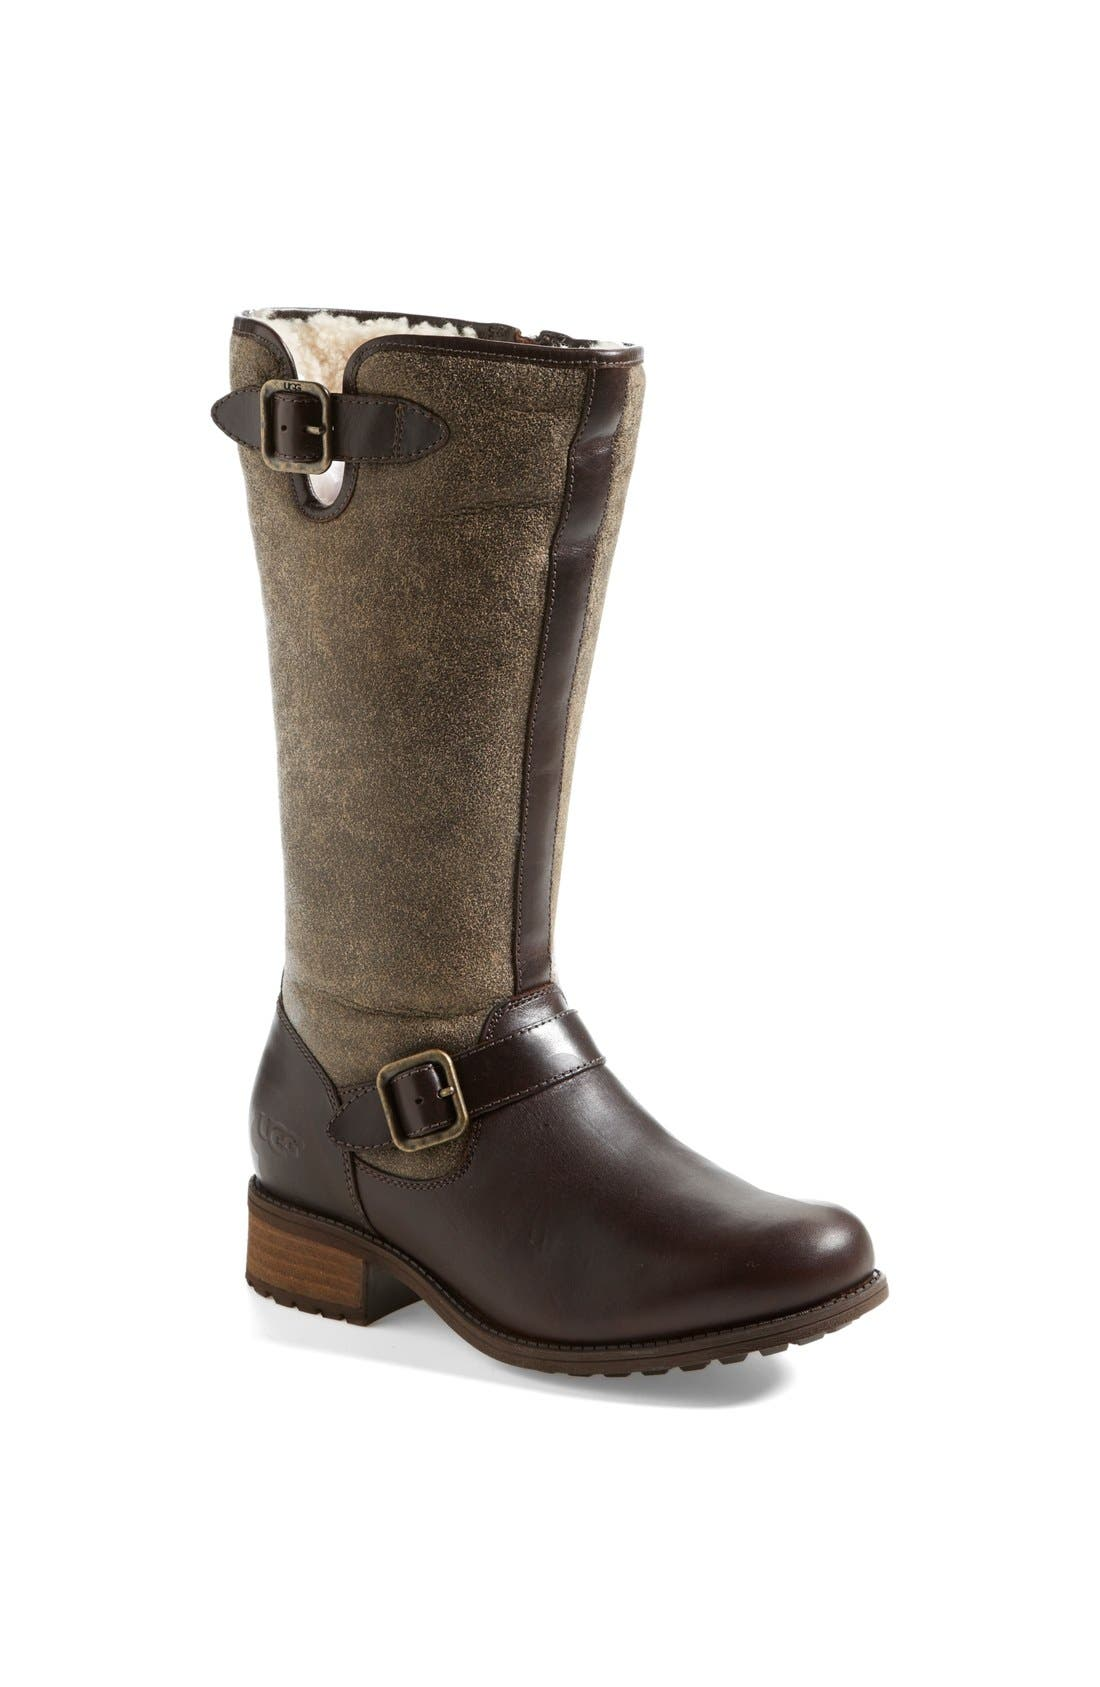 Alternate Image 1 Selected - UGG® 'Chancery' Boot (Women)